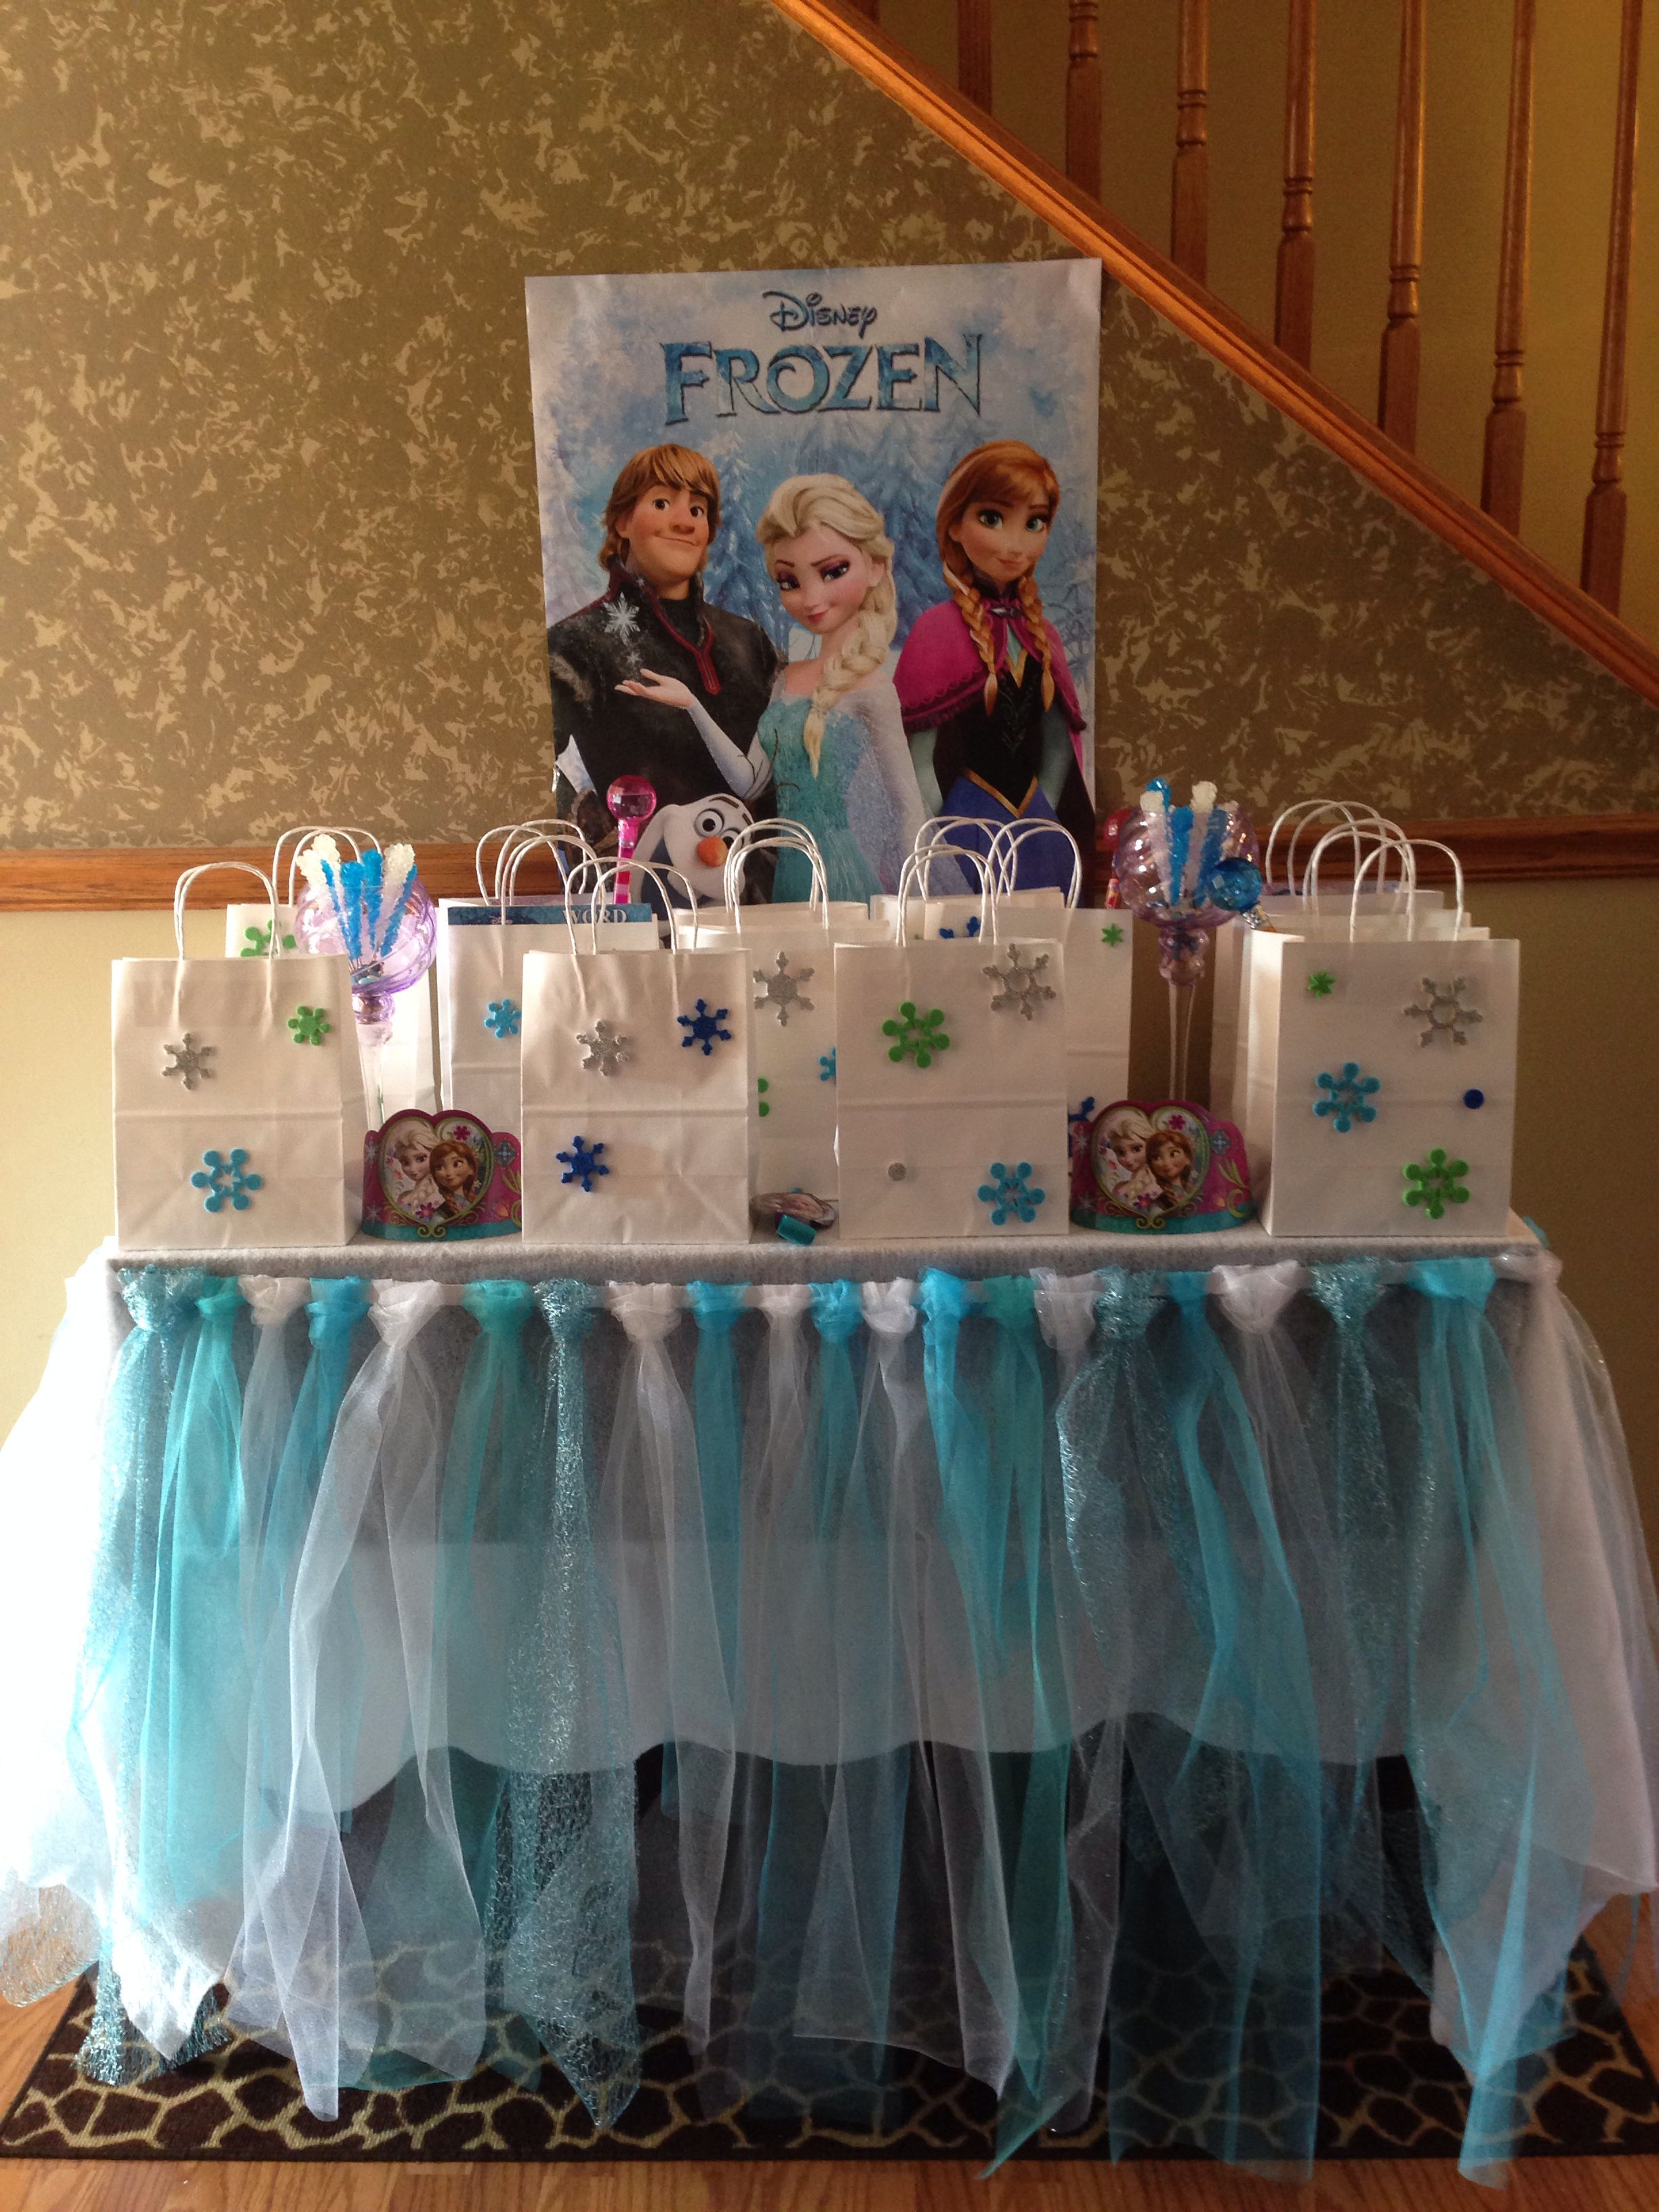 My 4 Year Old Daughters Frozen Bday Party Was A Blast The Tulle Table Skirt Her Matching Tutu And Treat Bags Took Forever To Complete